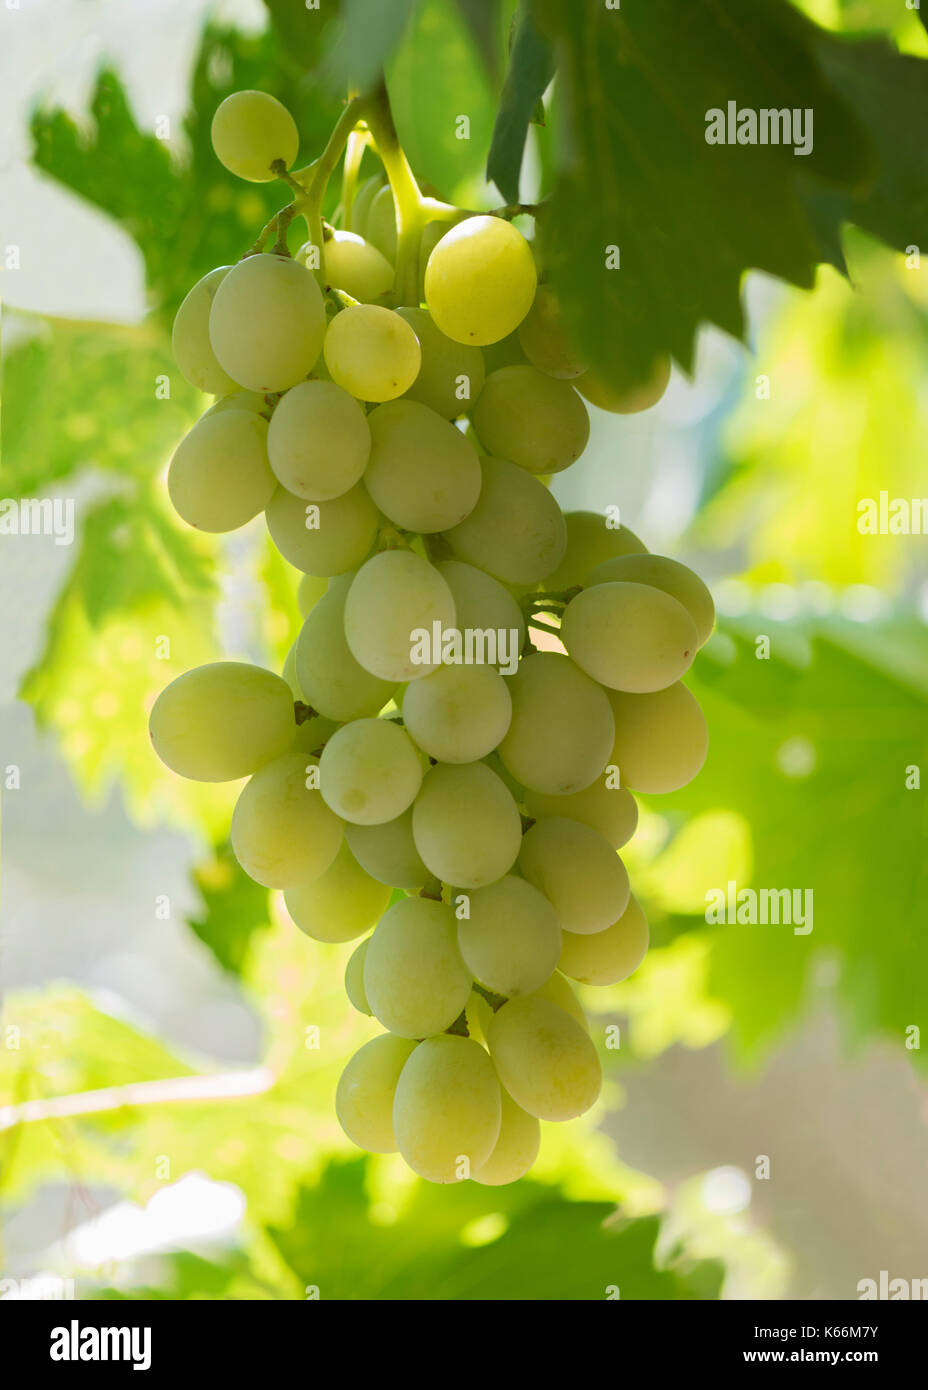 vertical image of plump white grapes hanging on a vine, backlit buy the morning sun bokeh affect in the green background - Stock Image